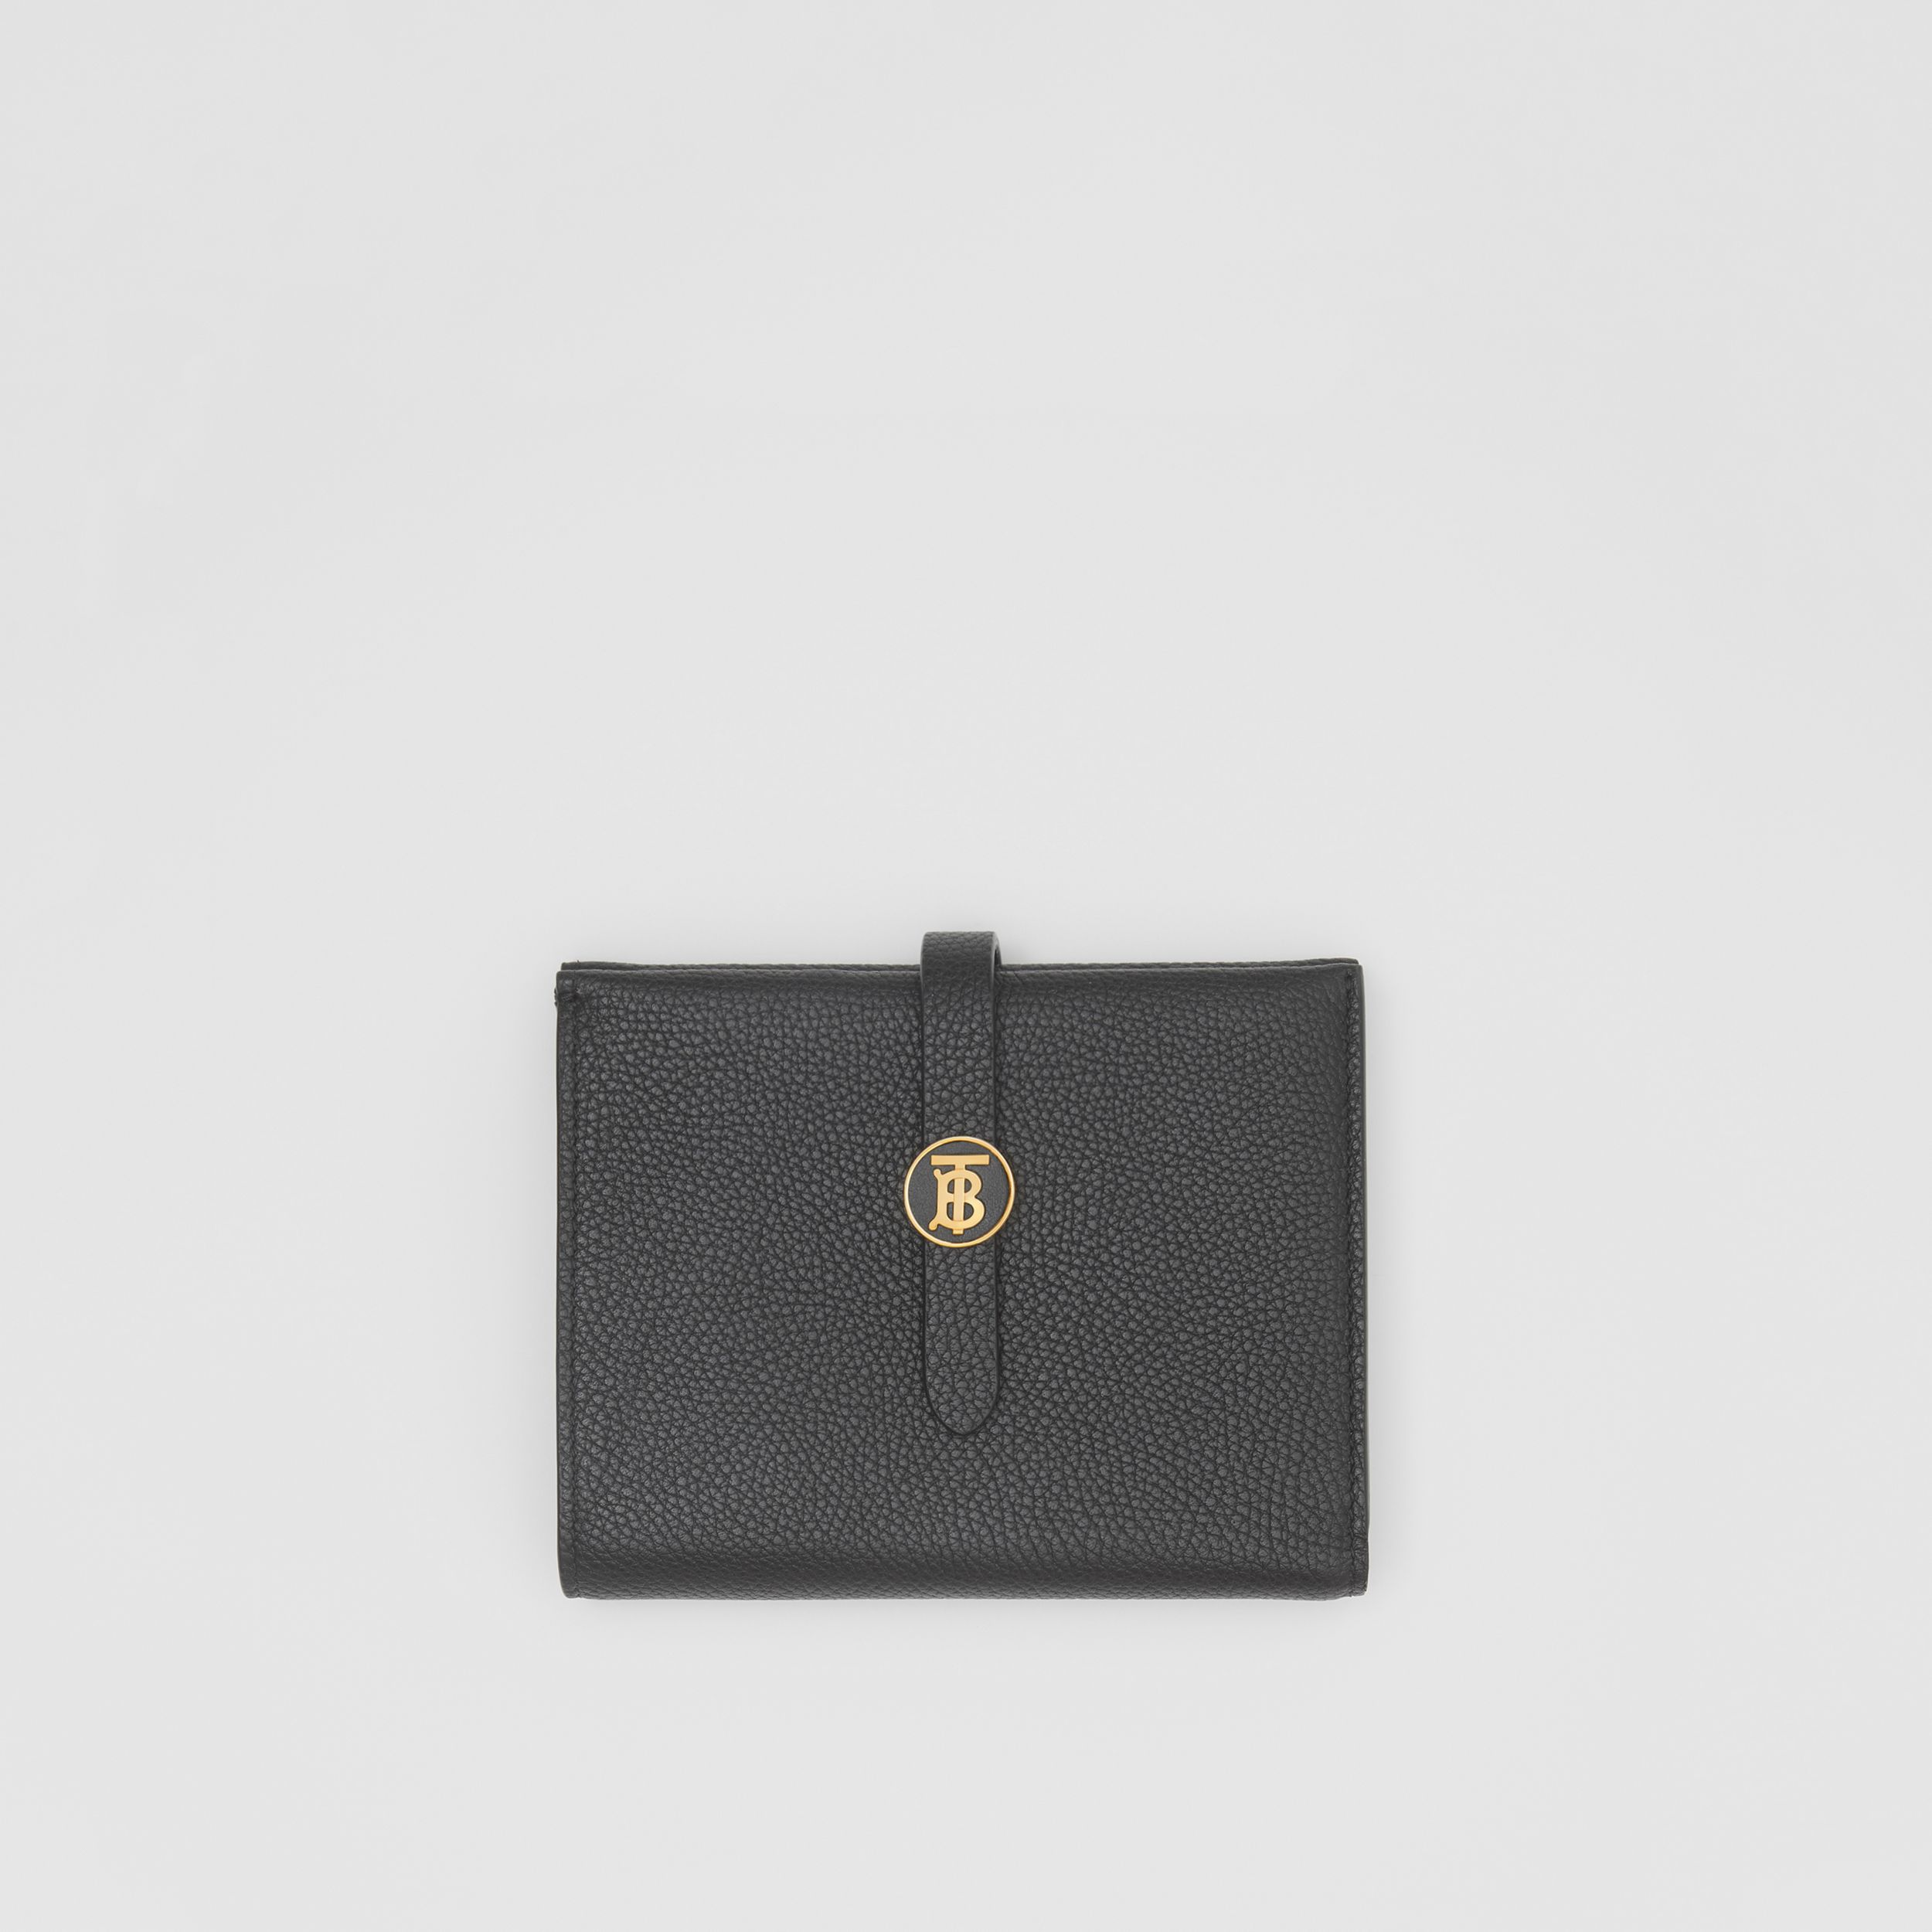 Monogram Motif Grainy Leather Folding Wallet in Black - Women | Burberry - 1